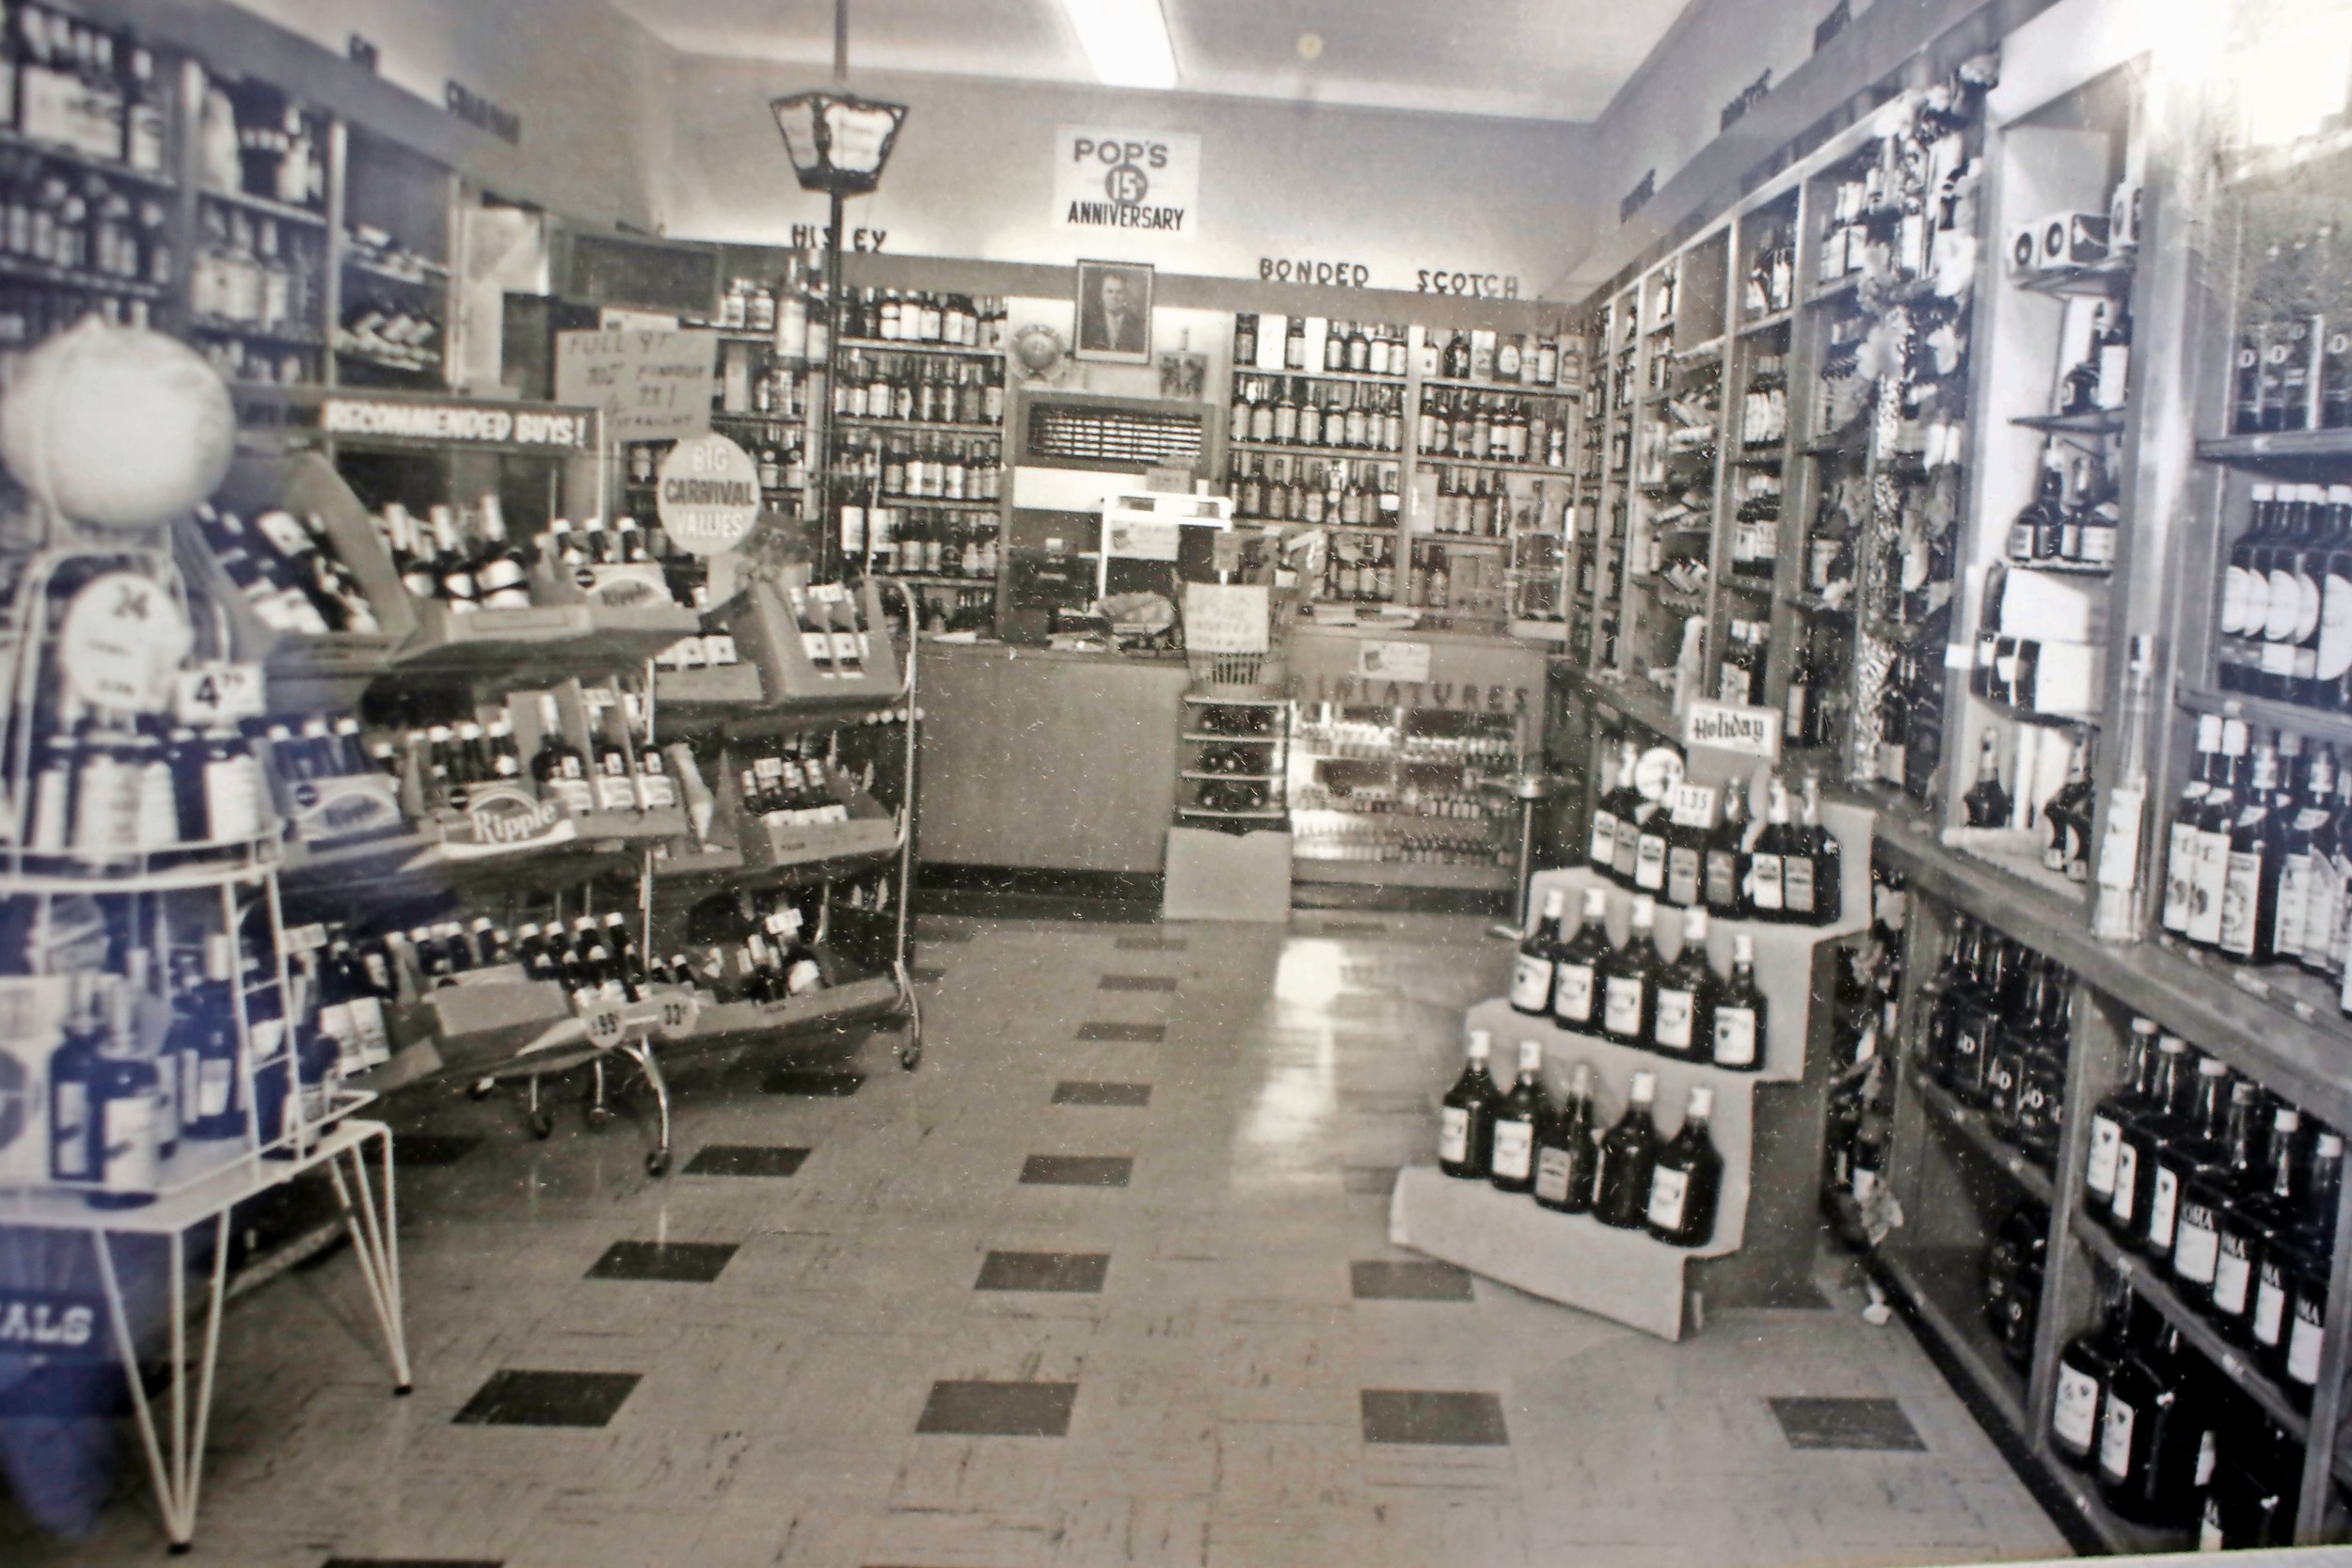 The shop, which Peter Poulos opened in 1945, was originally smaller.